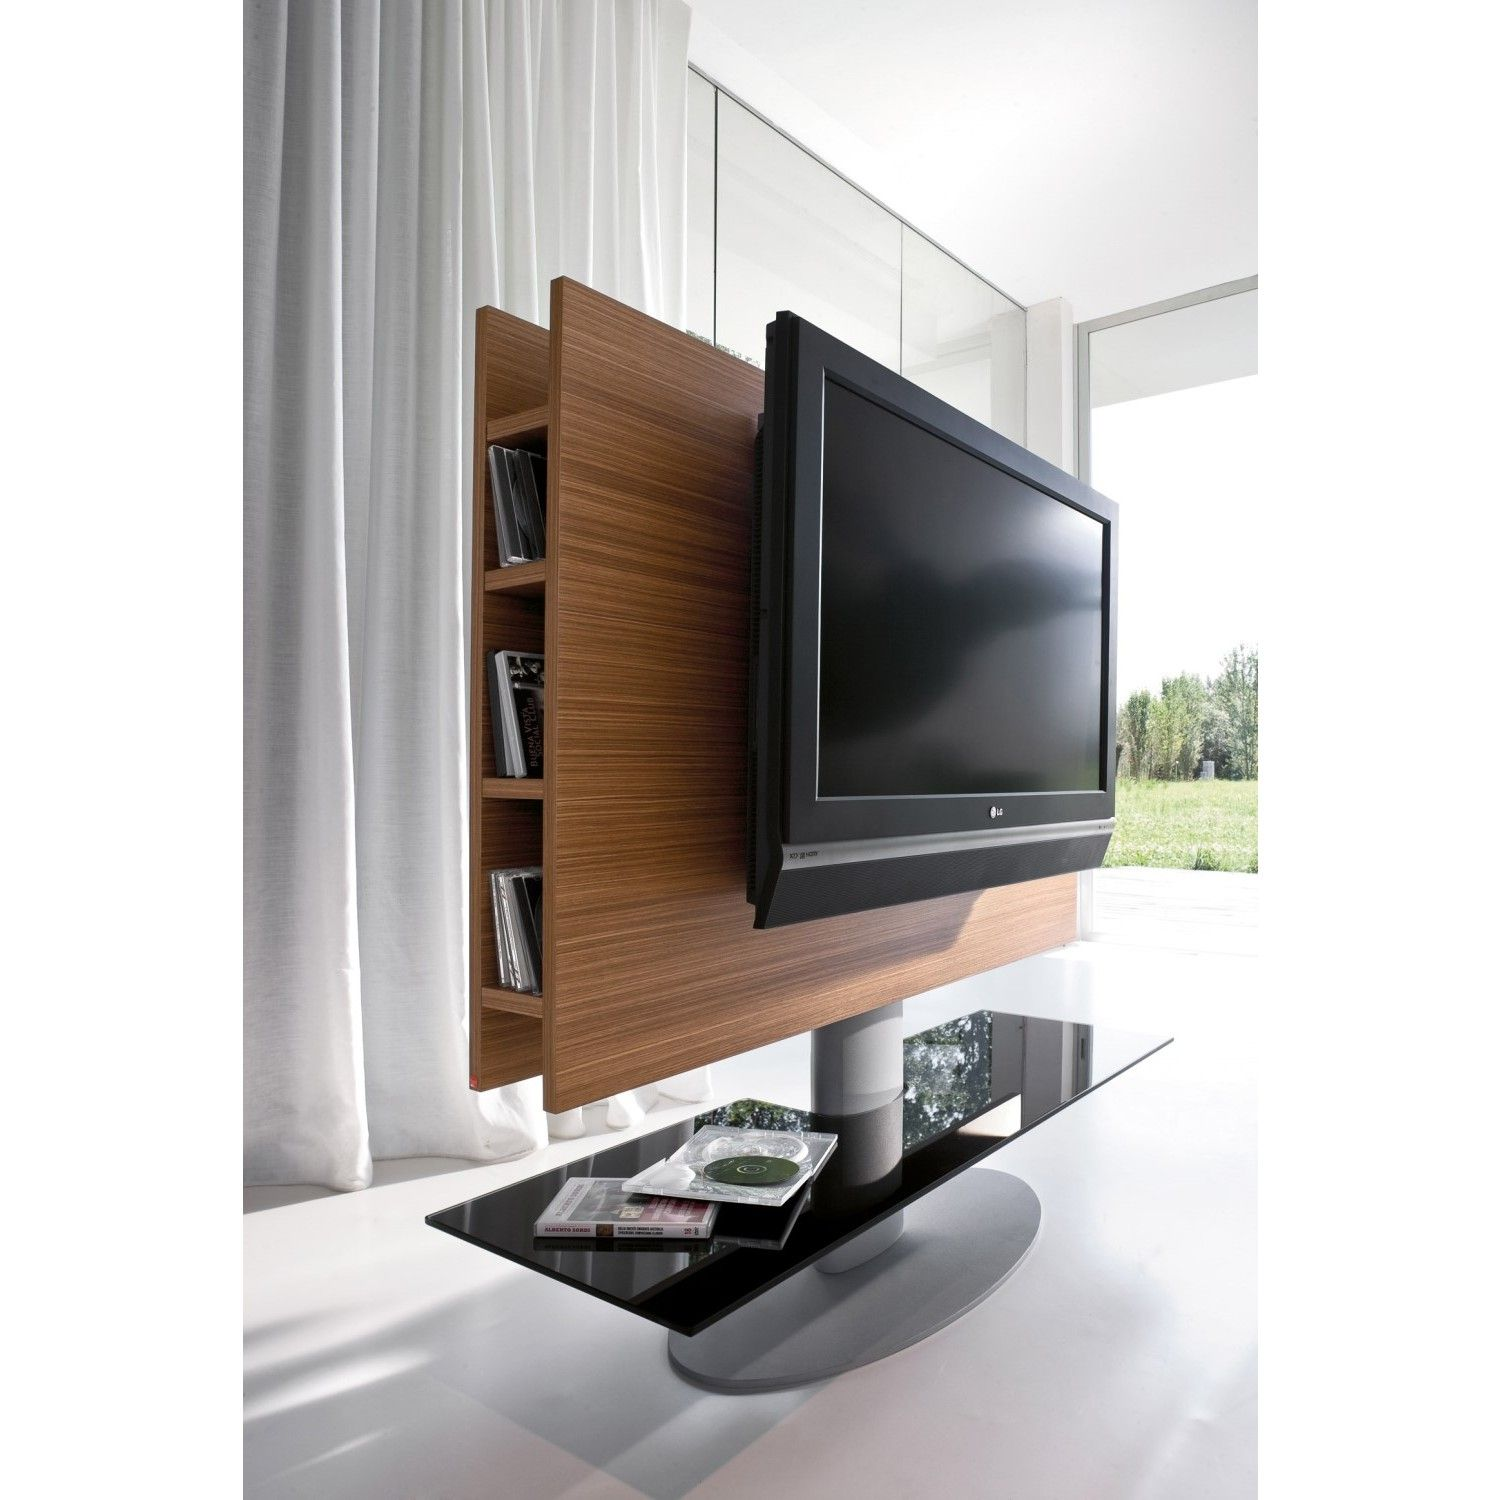 meuble tv orientable cortes avec panneau en bois fini noyer canaletto et plateau en verre verni. Black Bedroom Furniture Sets. Home Design Ideas